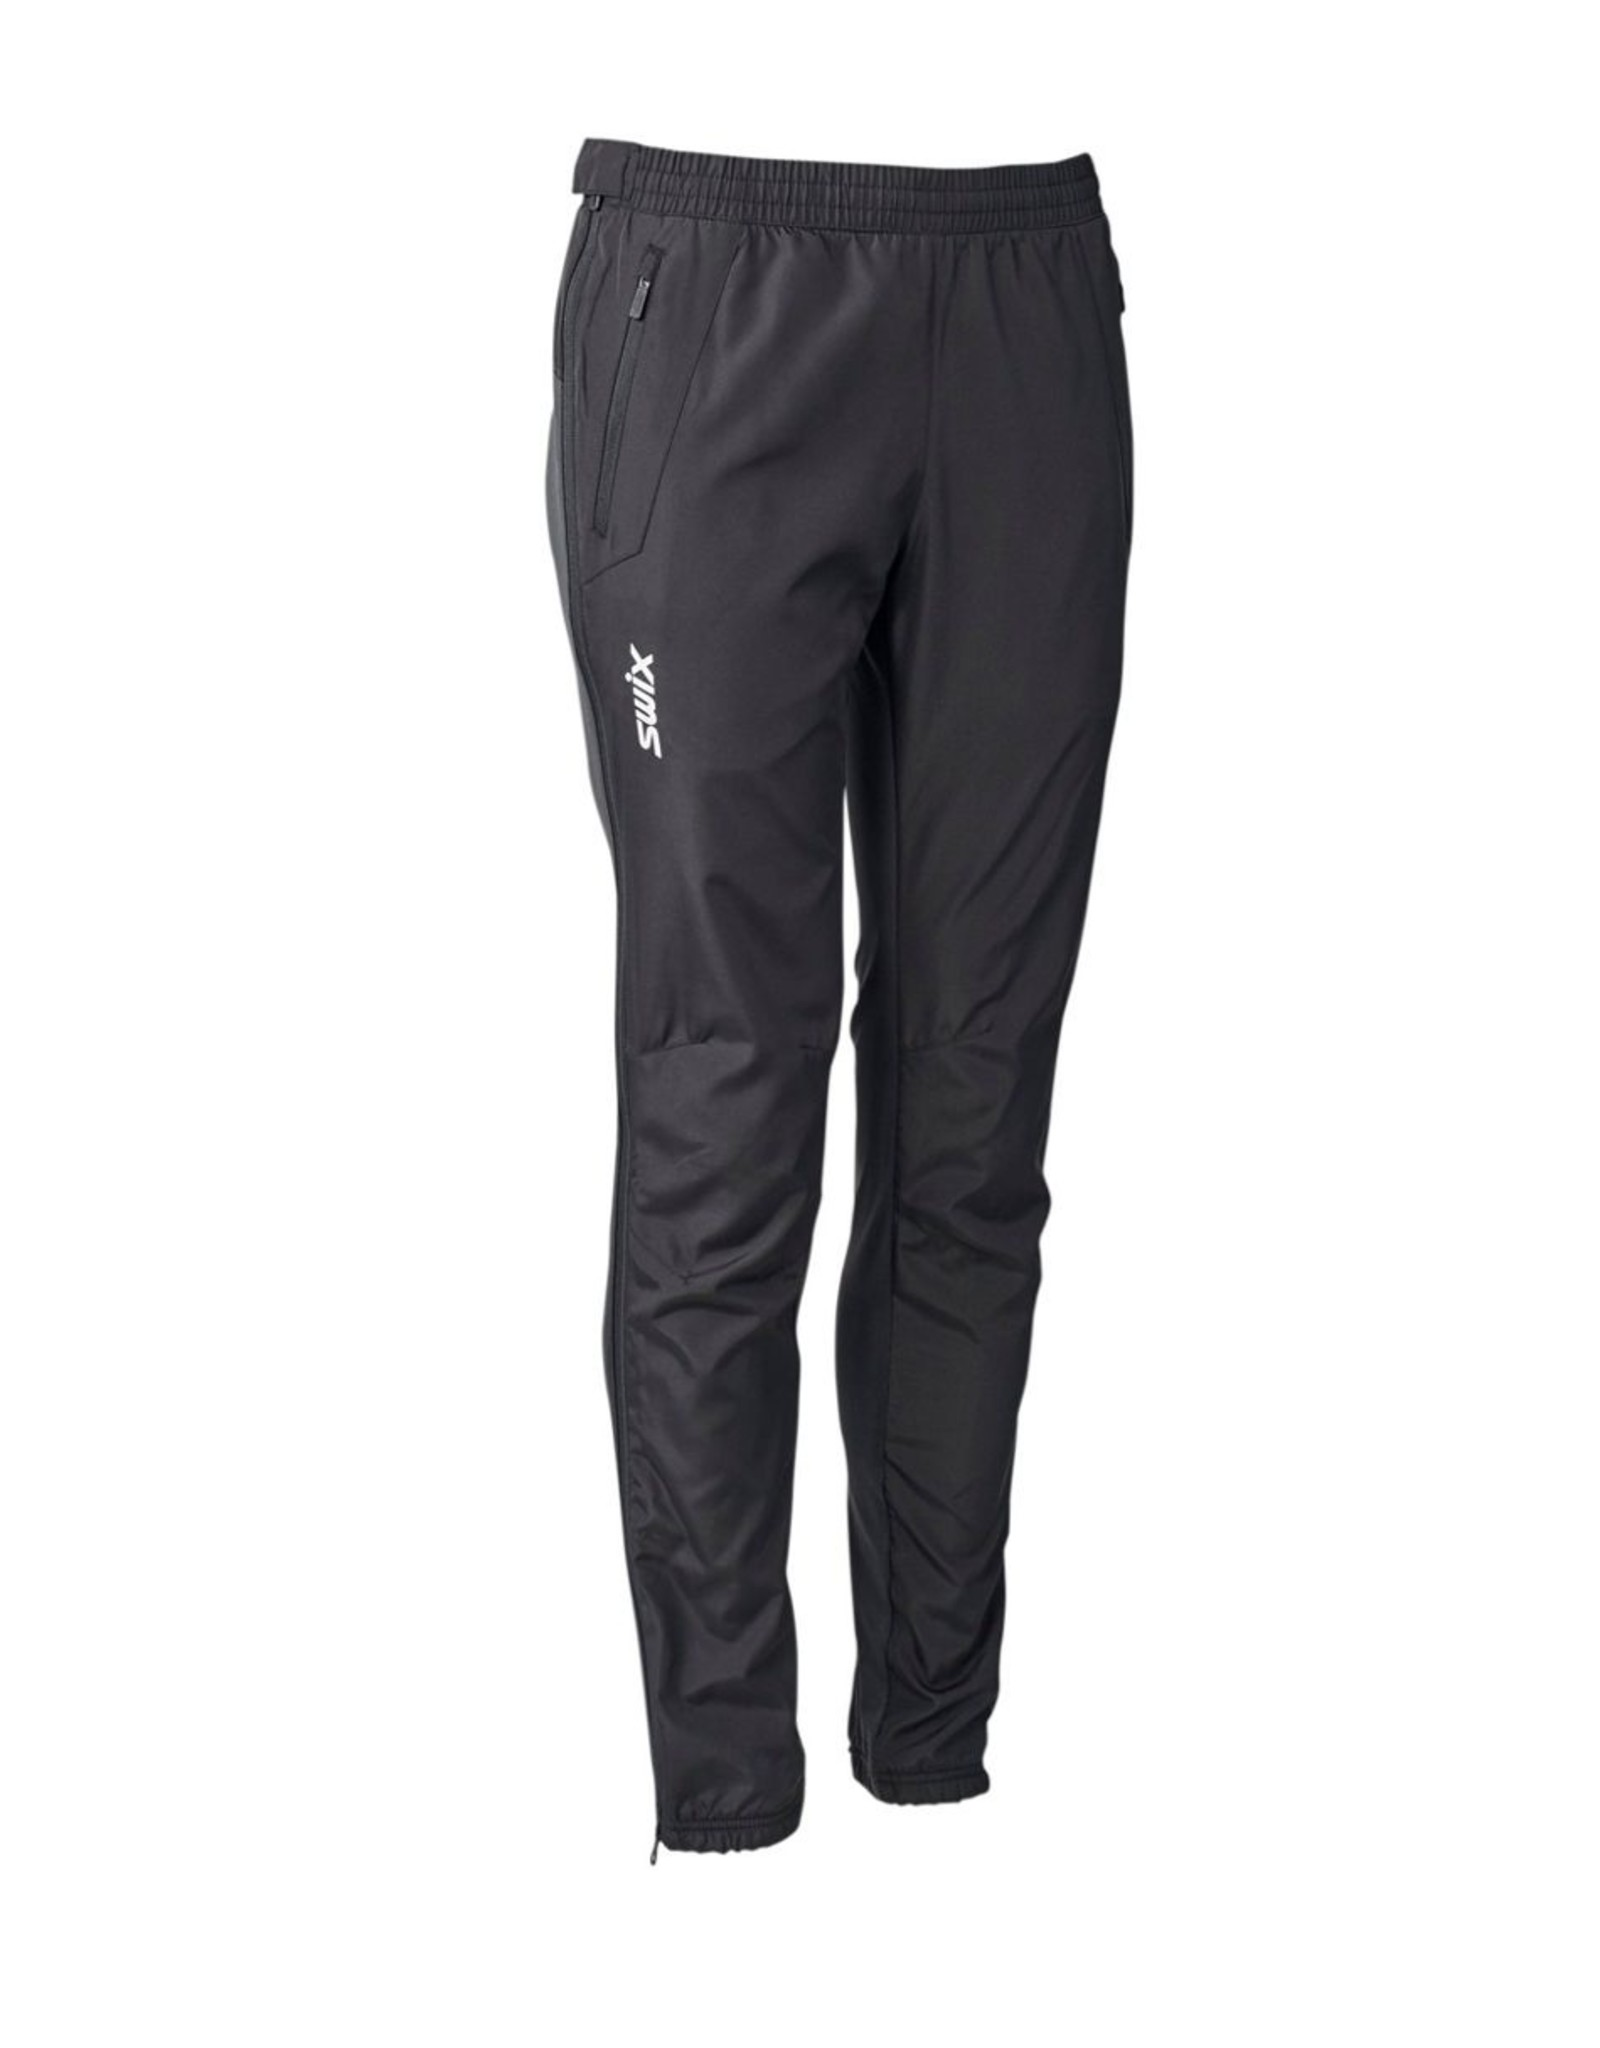 Swix UniversalX Pants Mens S (10000) Black